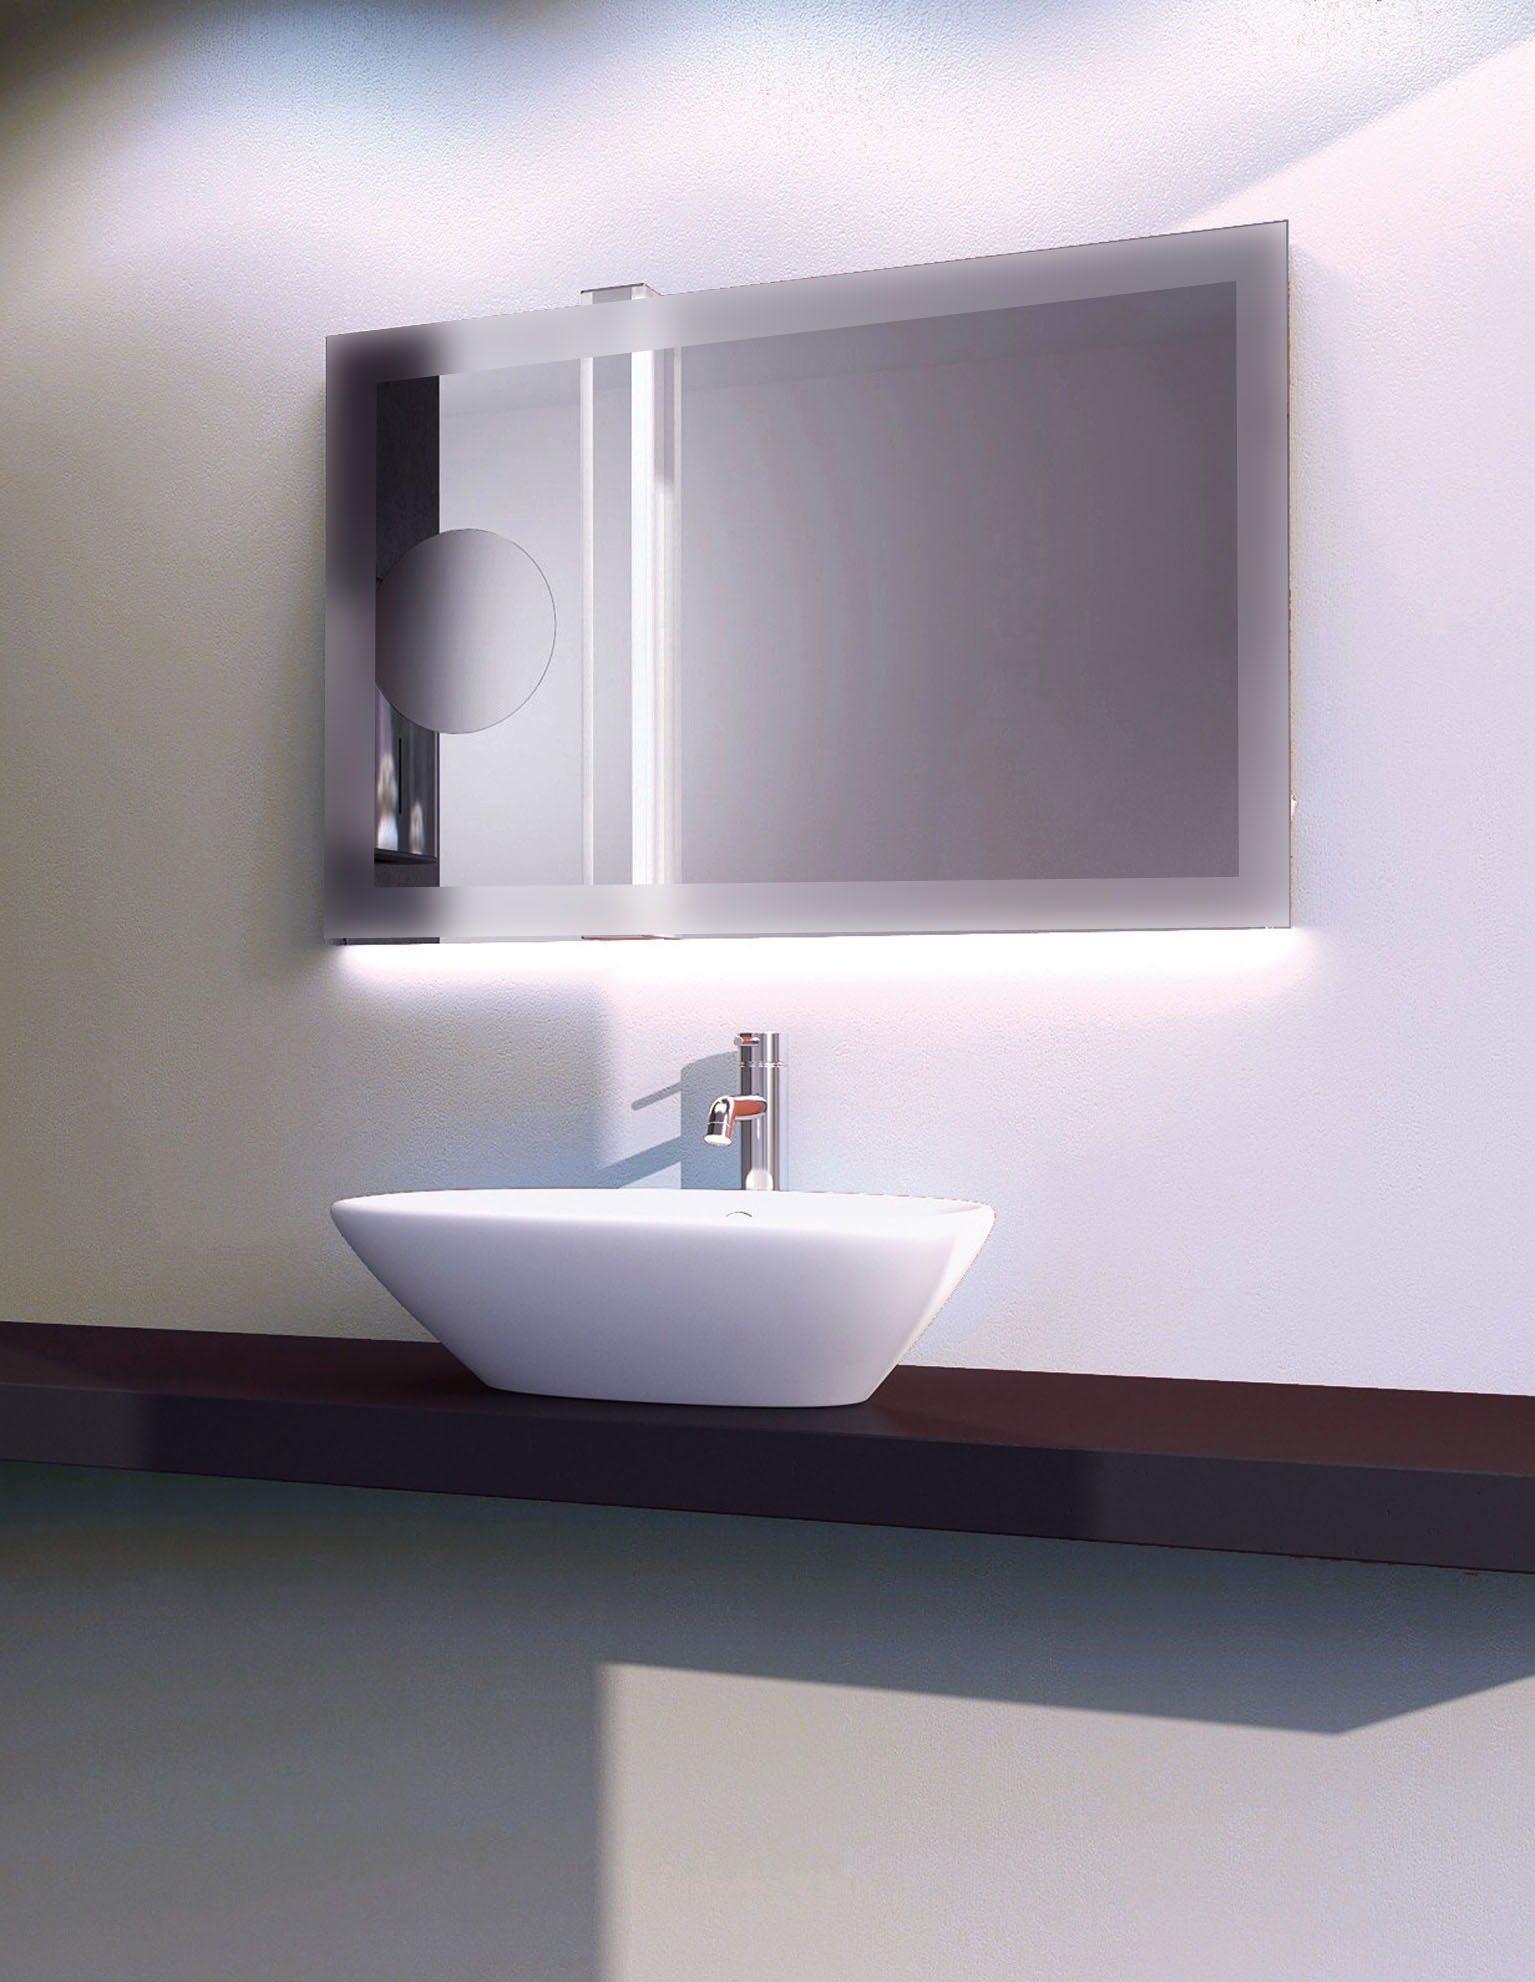 Led Bathroom Mirror With Demister